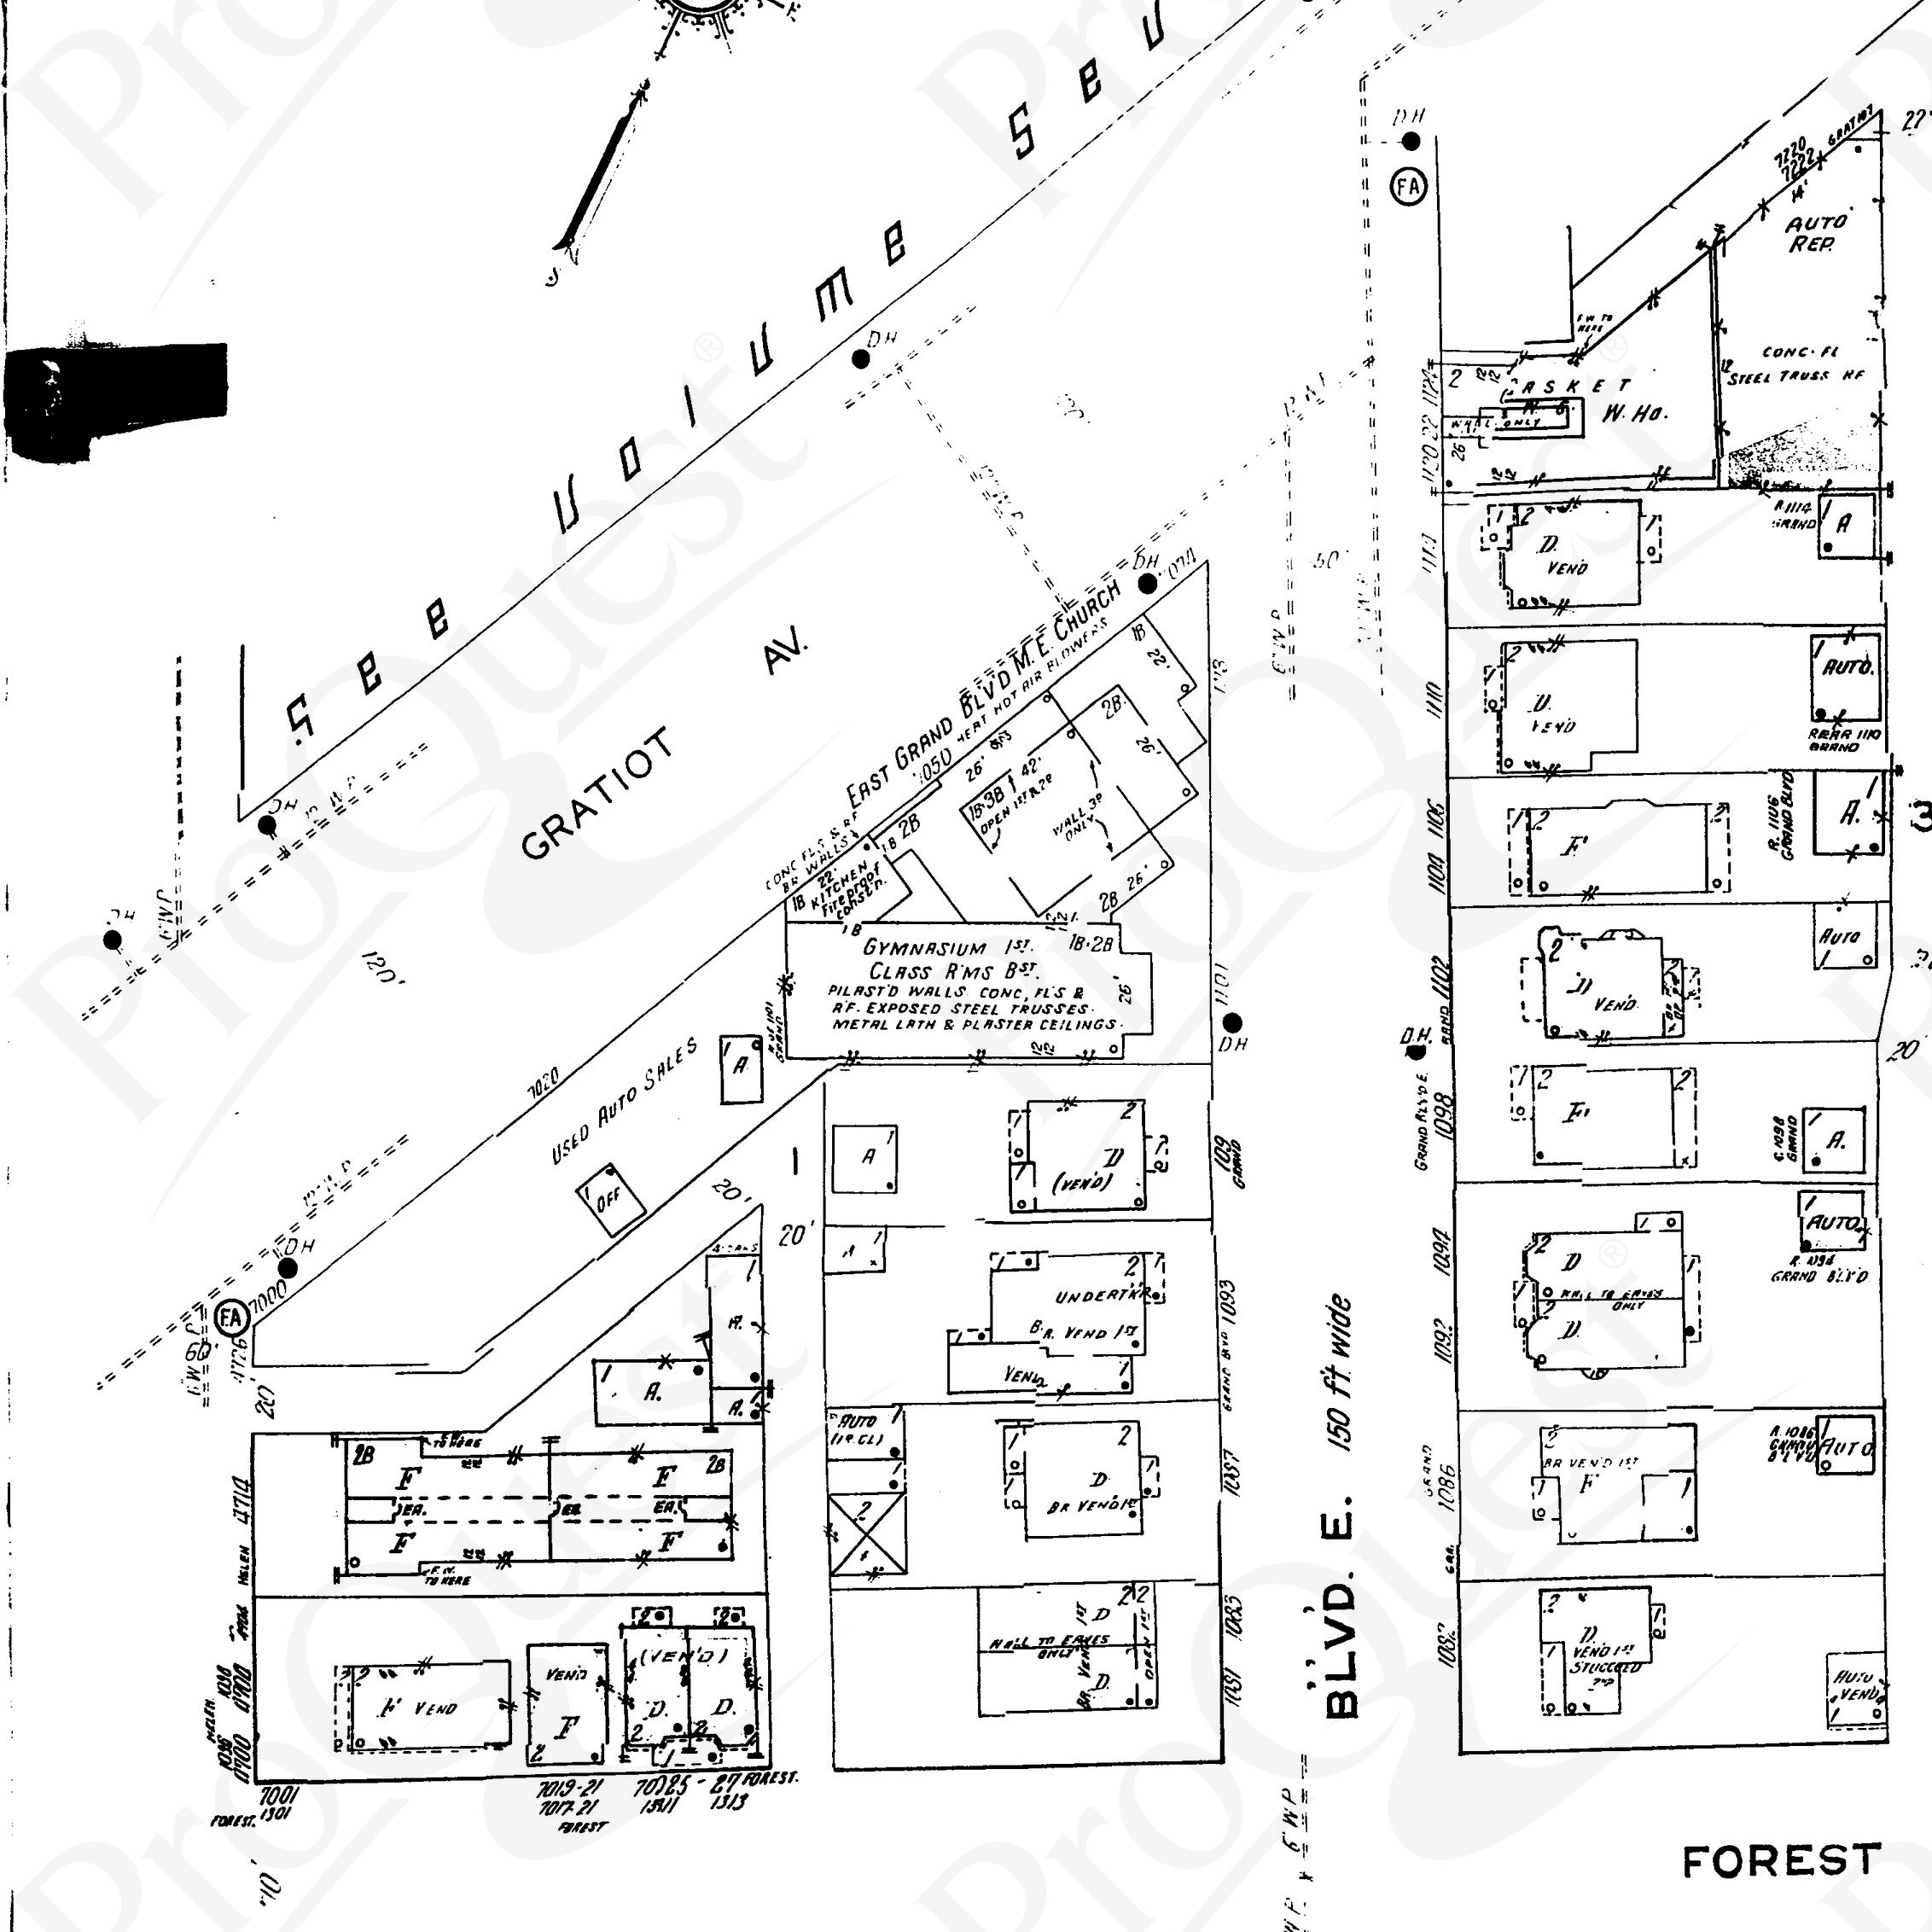 This map from the 1930s shows the widening of Gratiot Avenue. The map also shows the parish house, denoting its pilastered walls, exposed steel trusses, and plastered ceiling. The kitchen that was added is also shown. Note the name change, as well.